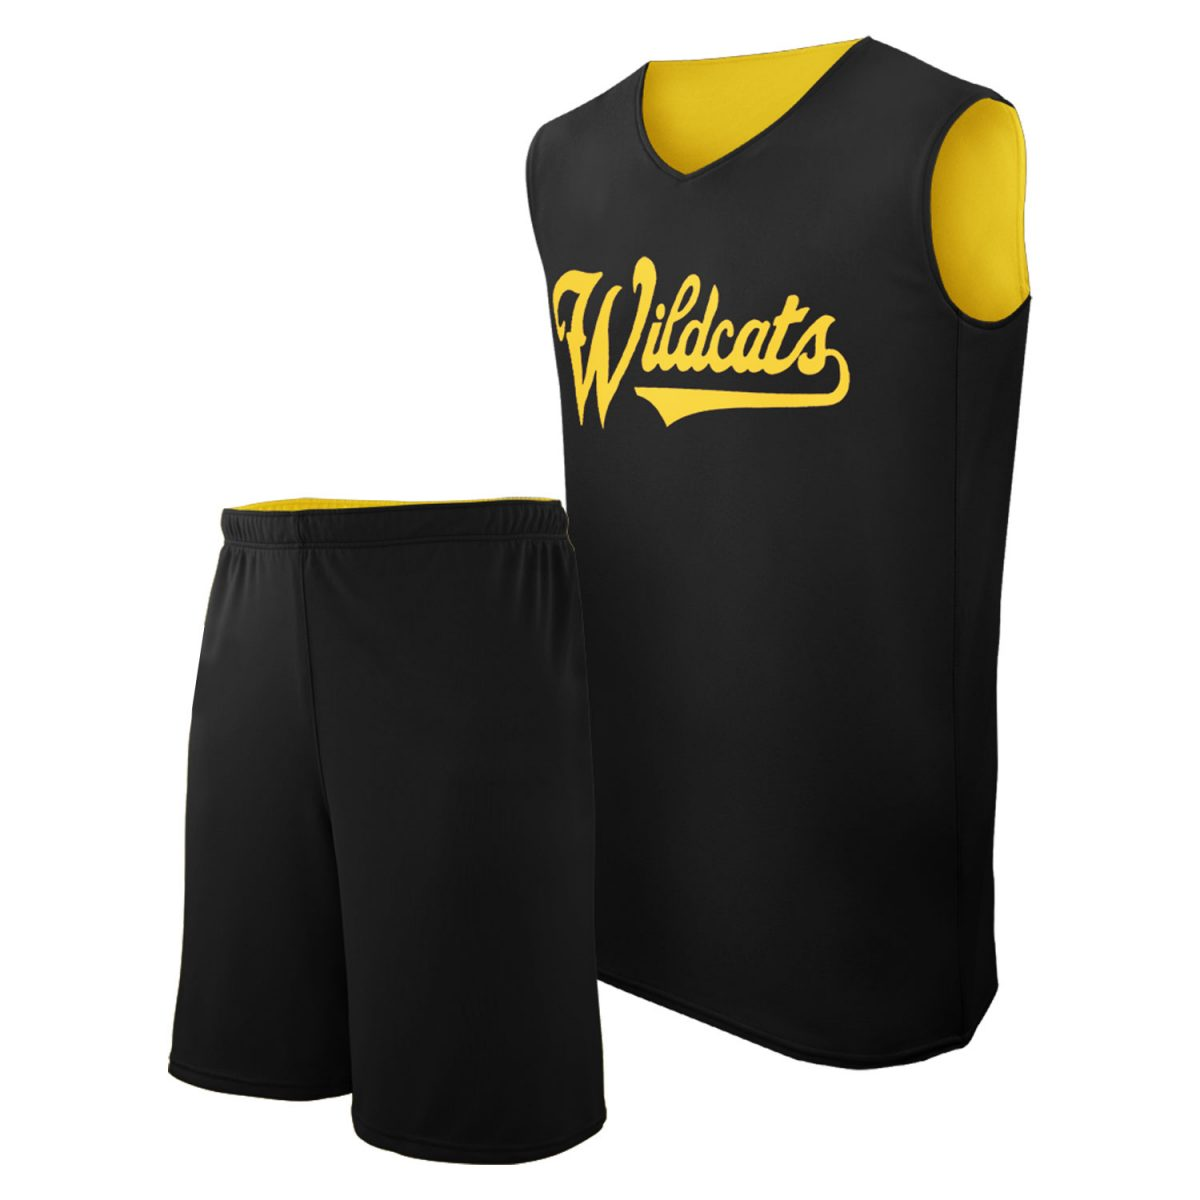 Boys Basketball Uniforms Manufacturers in Sri-lanka